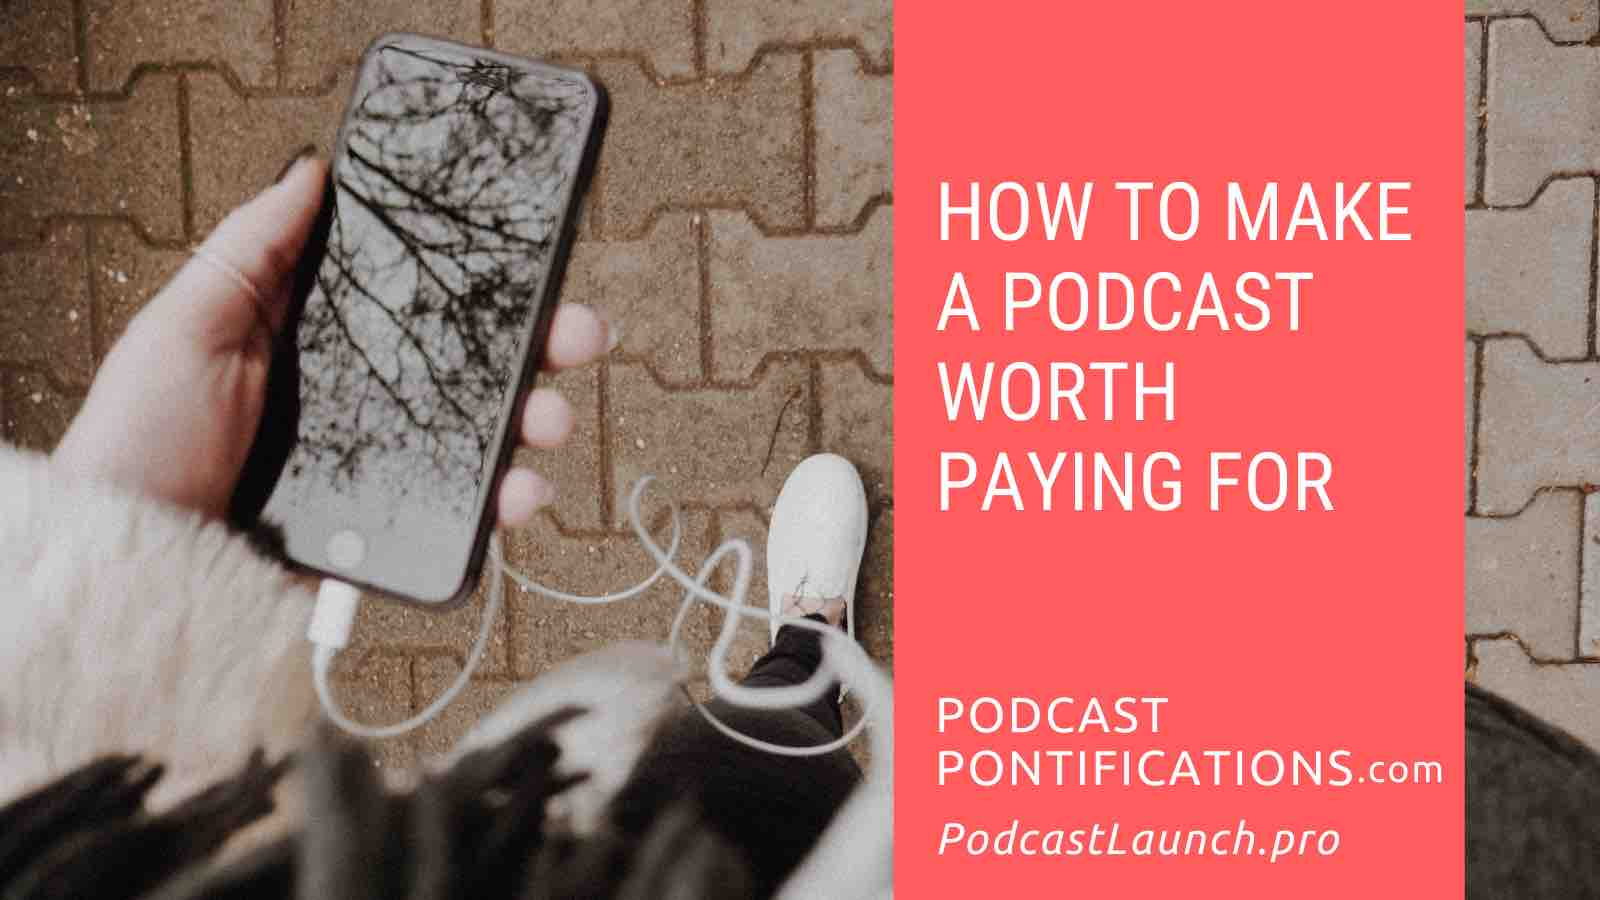 How To Make A Podcast Worth Paying For